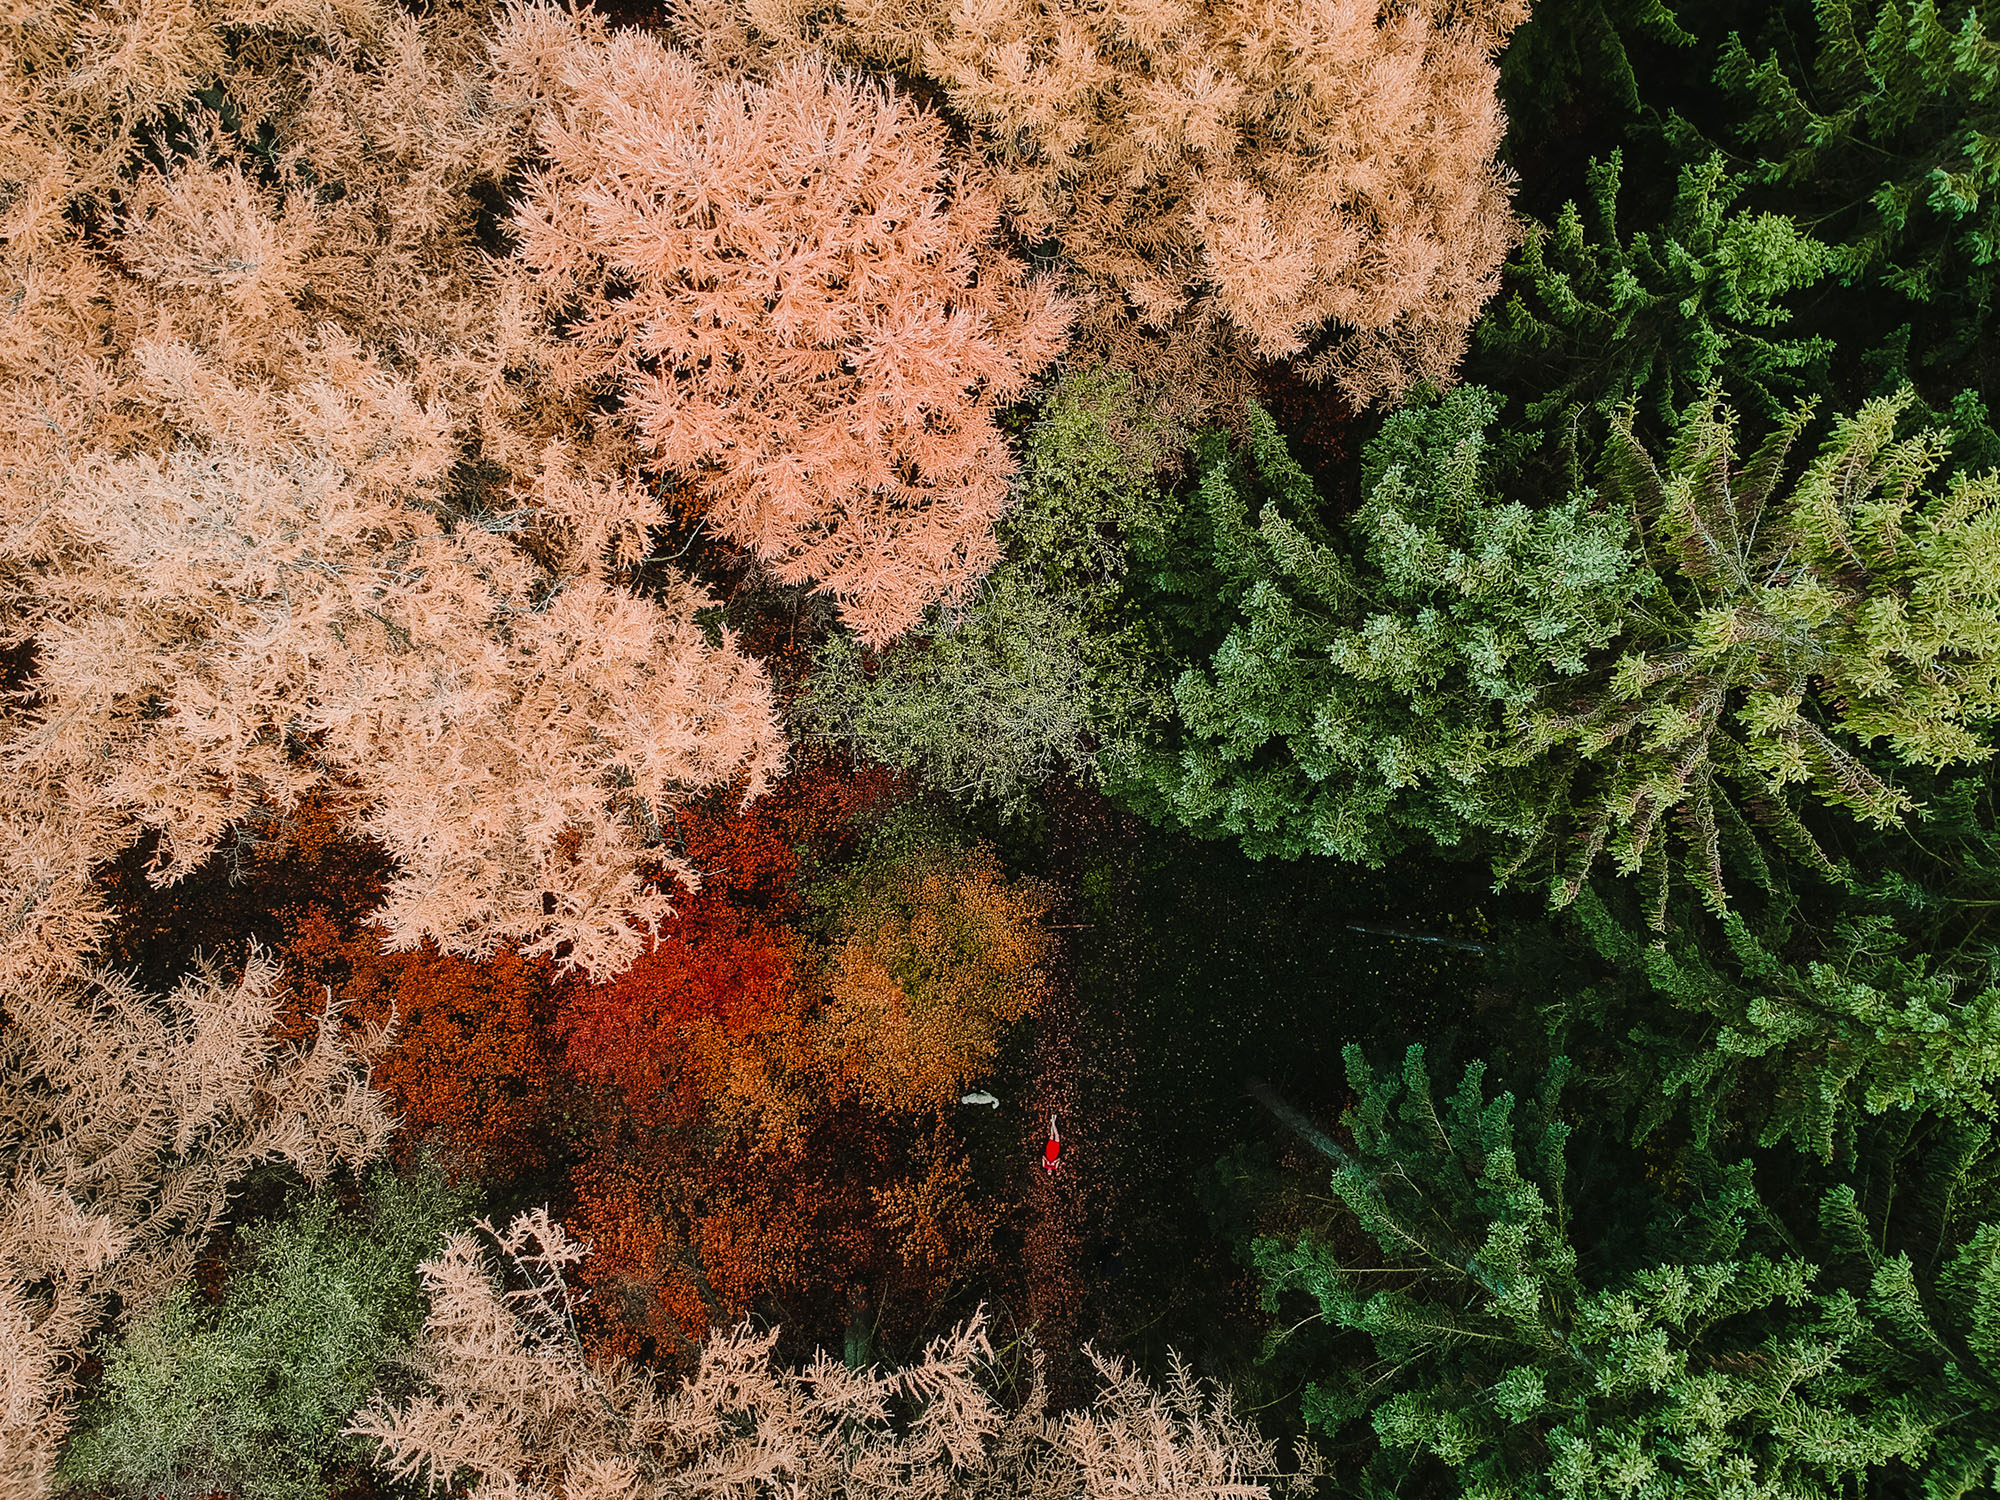 dji-fromabove-autumnleafs-buxtehude